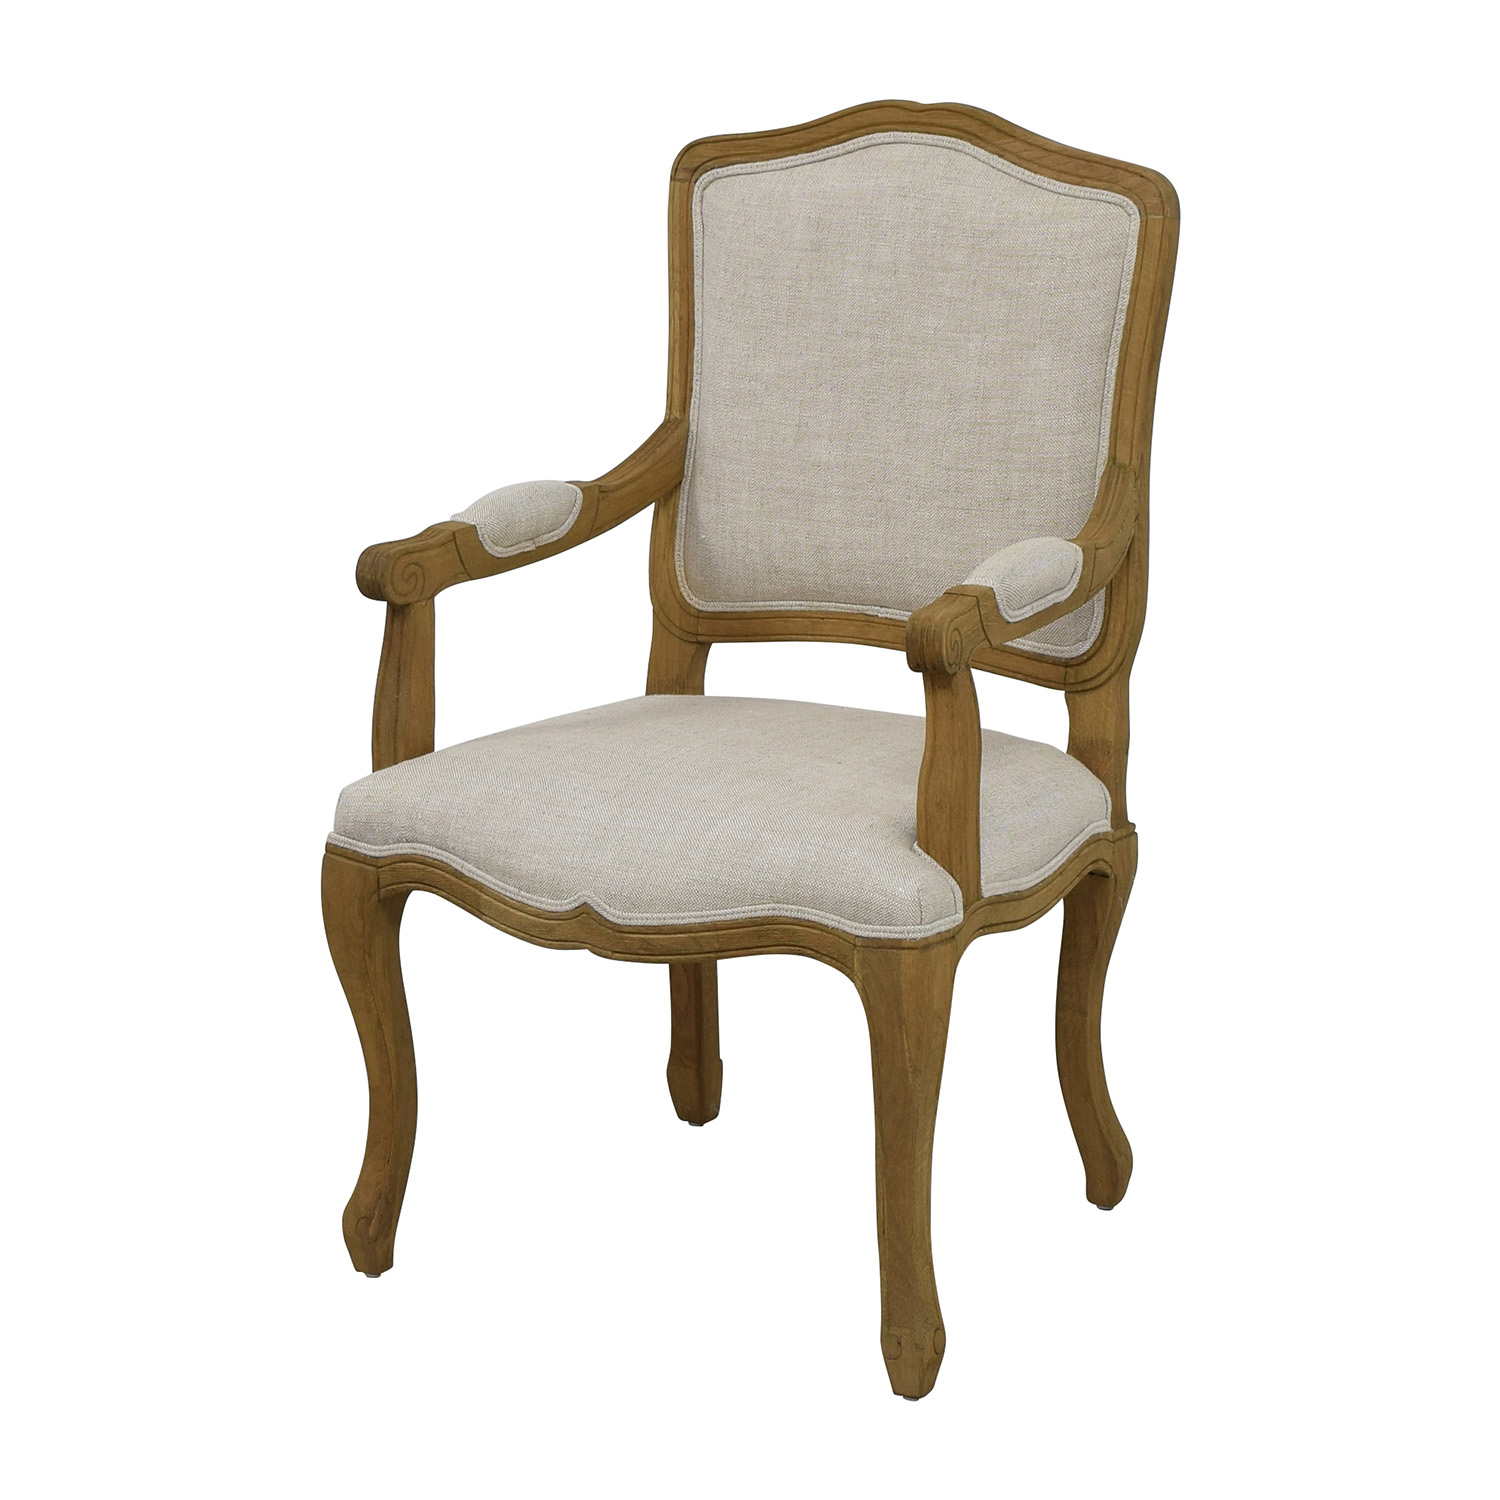 64% OFF Restoration Hardware Restoration Hardware Vintage French